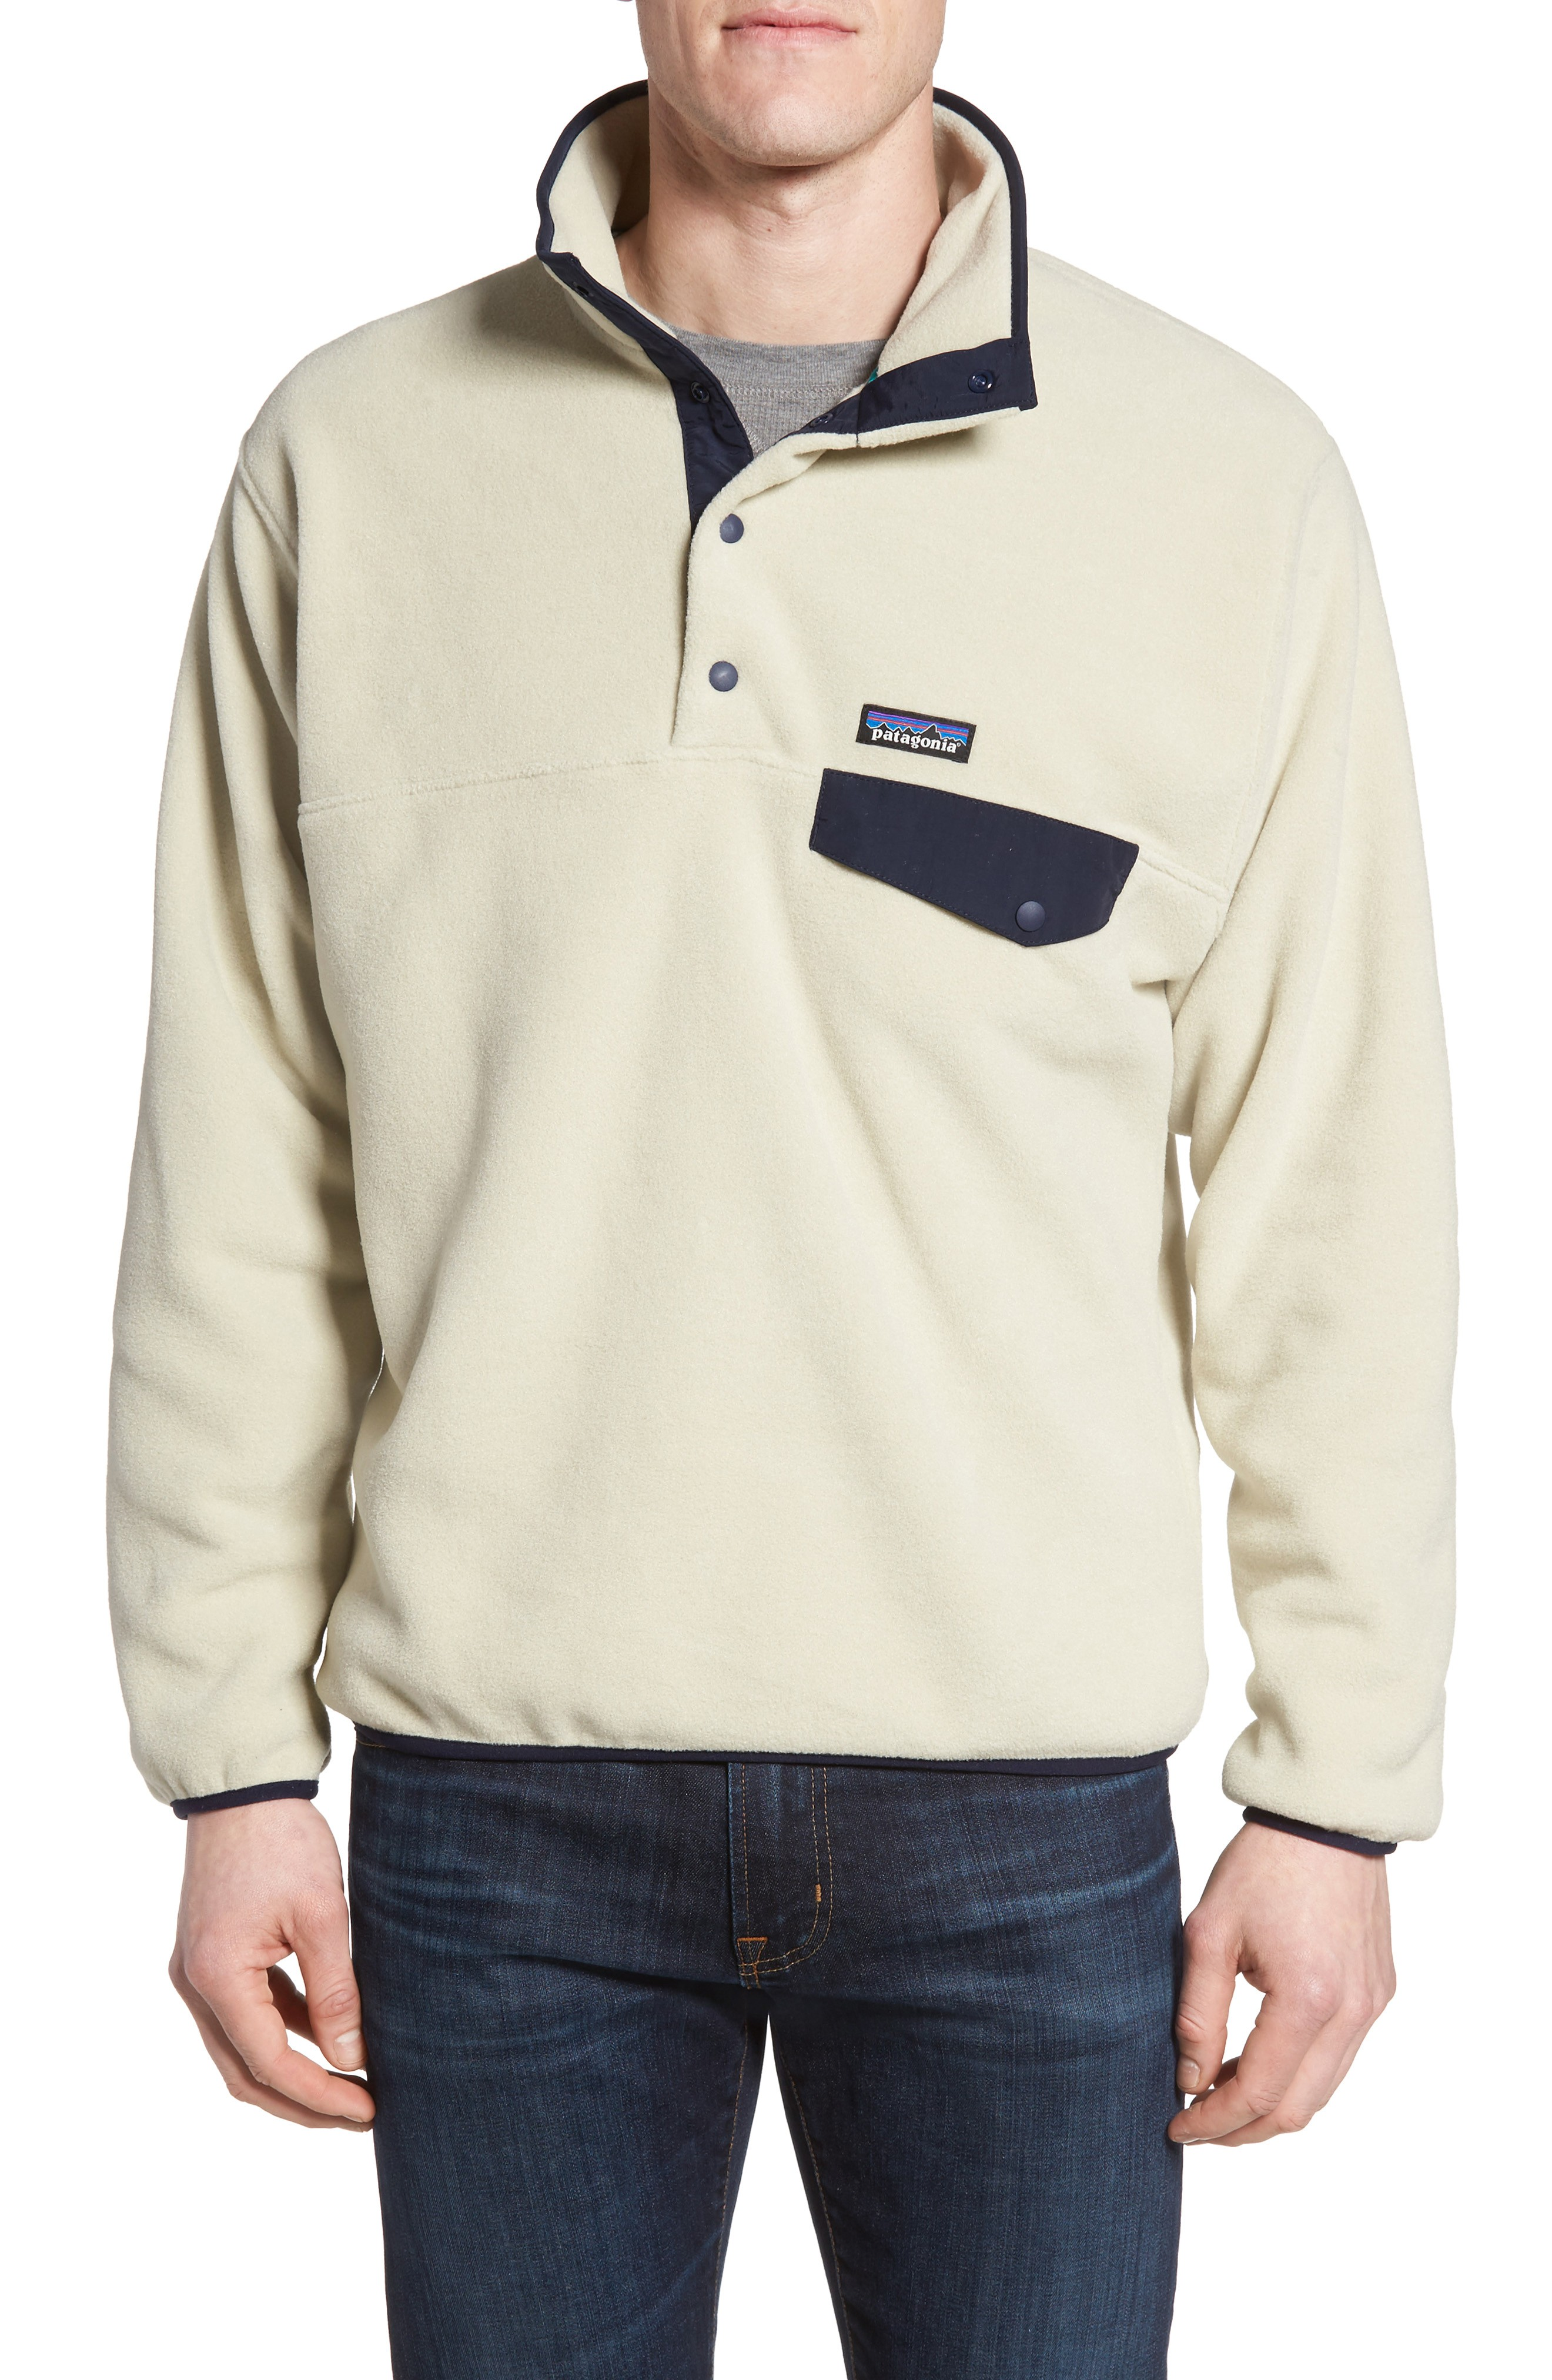 Patagonia Lightweight Synchilla Snap-t Pullover | Patagonia Synchilla Snap-t | Patagonia Synchilla